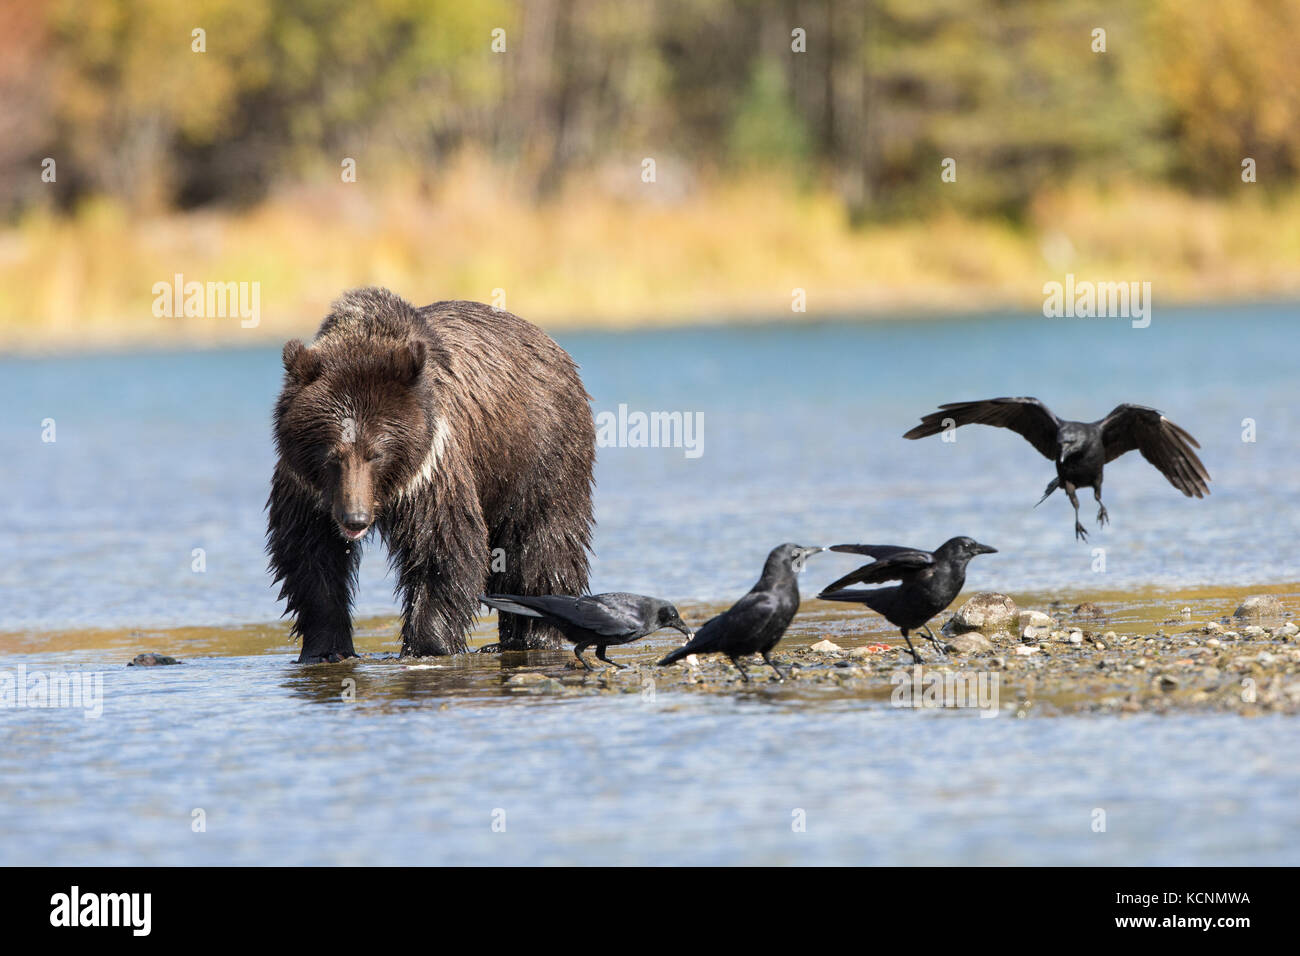 Grizzly bear (Ursus arctos horribilis), two-year old cub eating sockeye salmon (Oncorhynchus nerka) and scavenging - Stock Image